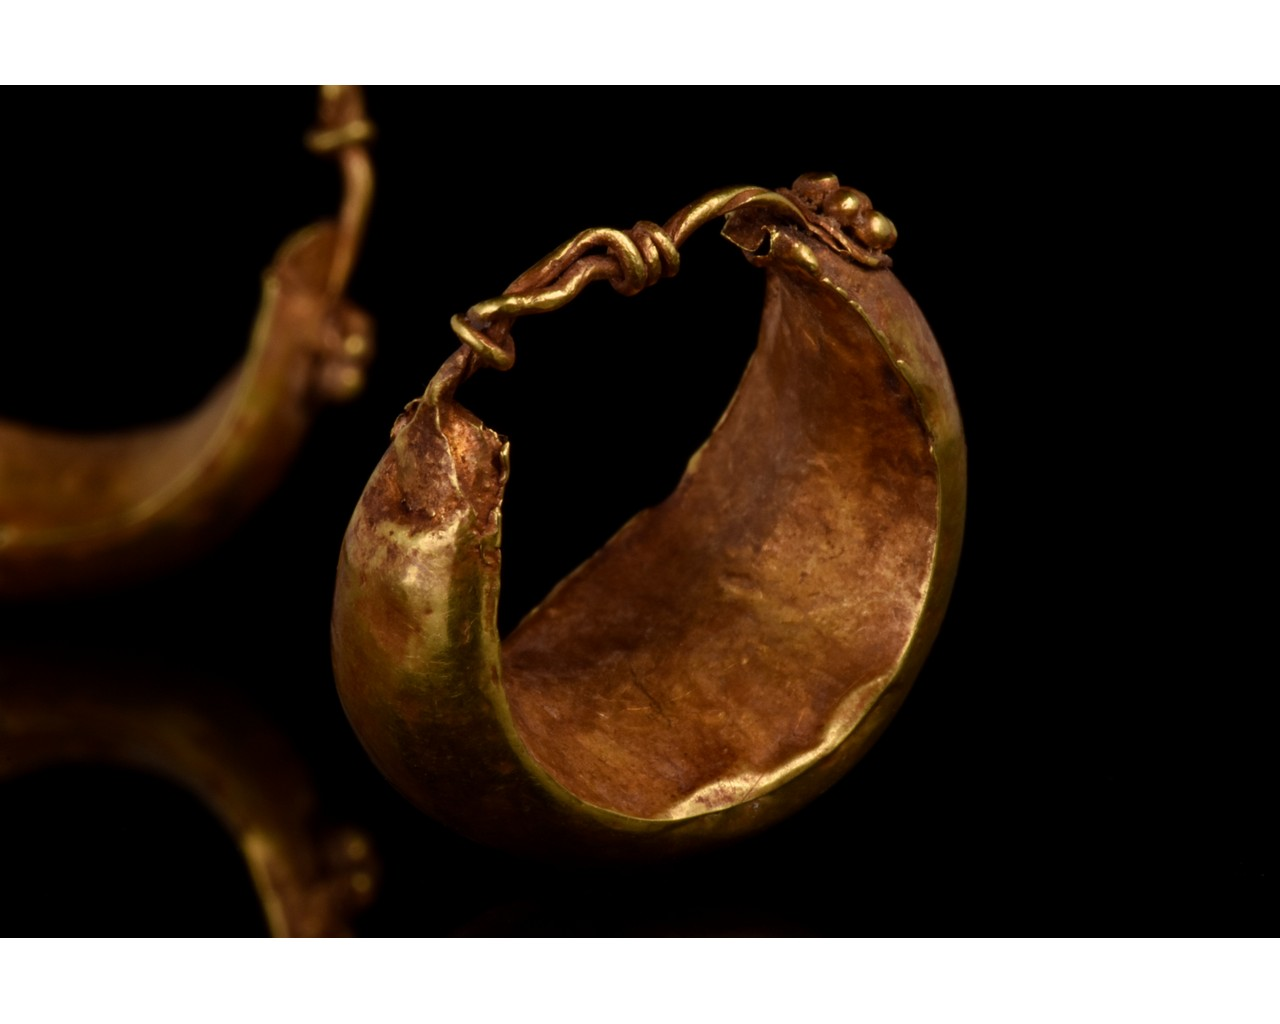 PAIR OF ROMAN GOLD BOAT SHAPED EARRINGS - FULL ANALYSIS - Image 8 of 11